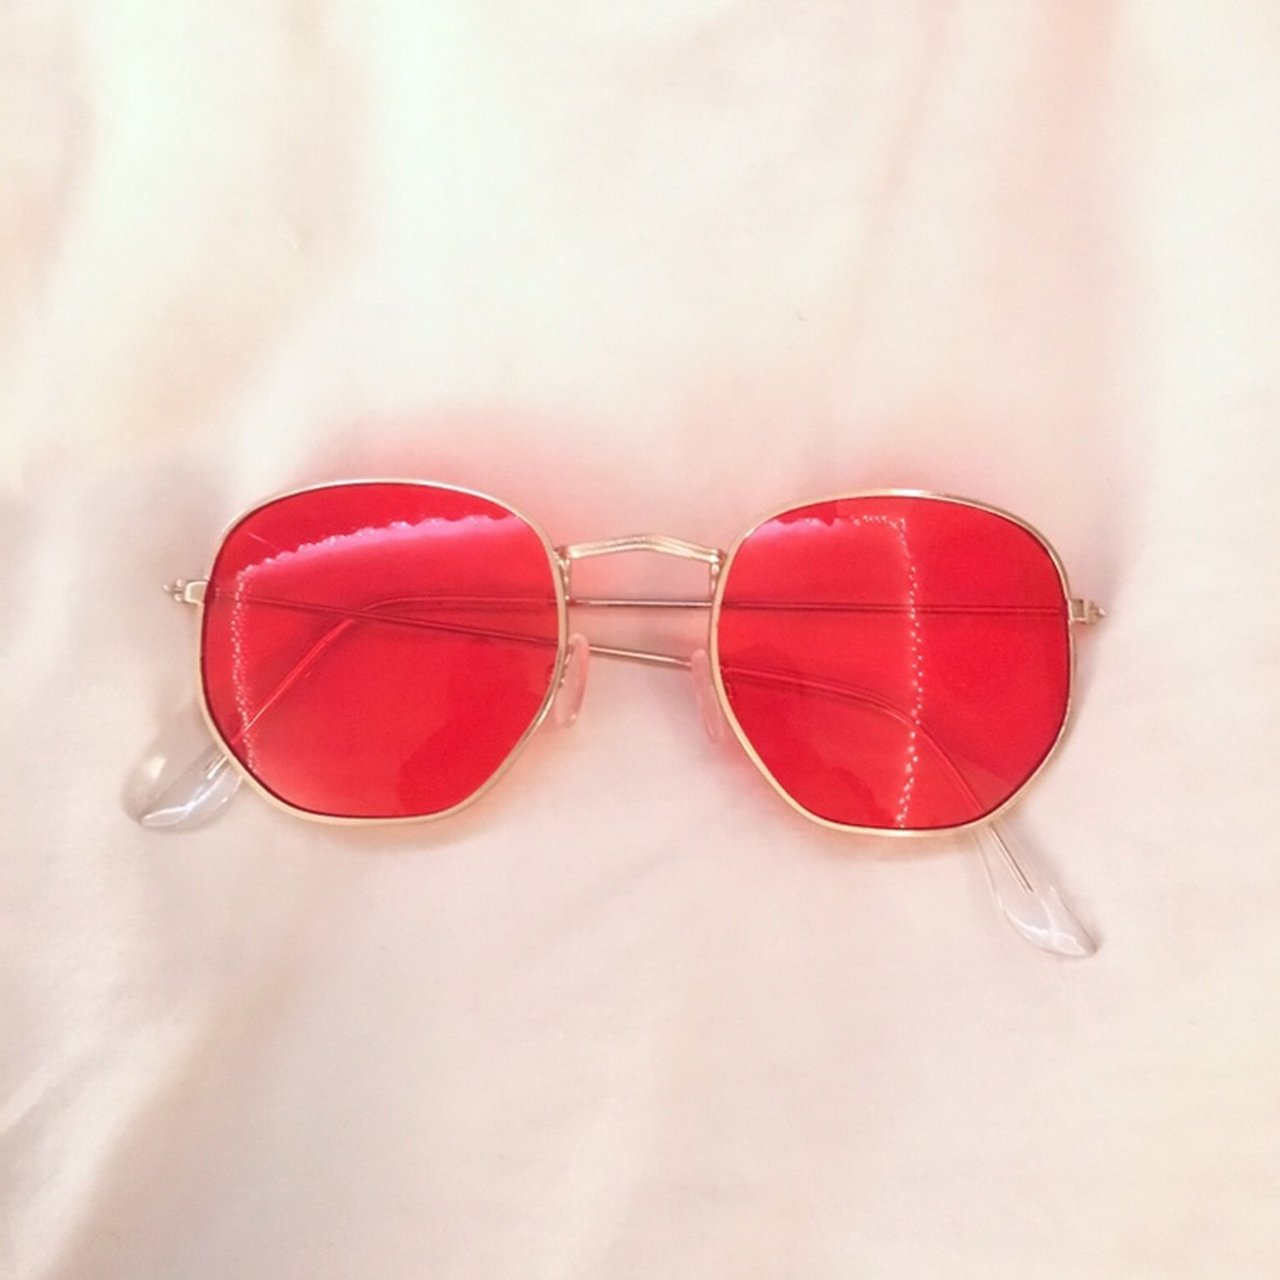 8e06864812 Red lensed glasses with gold frames - worn once - bought no - Depop